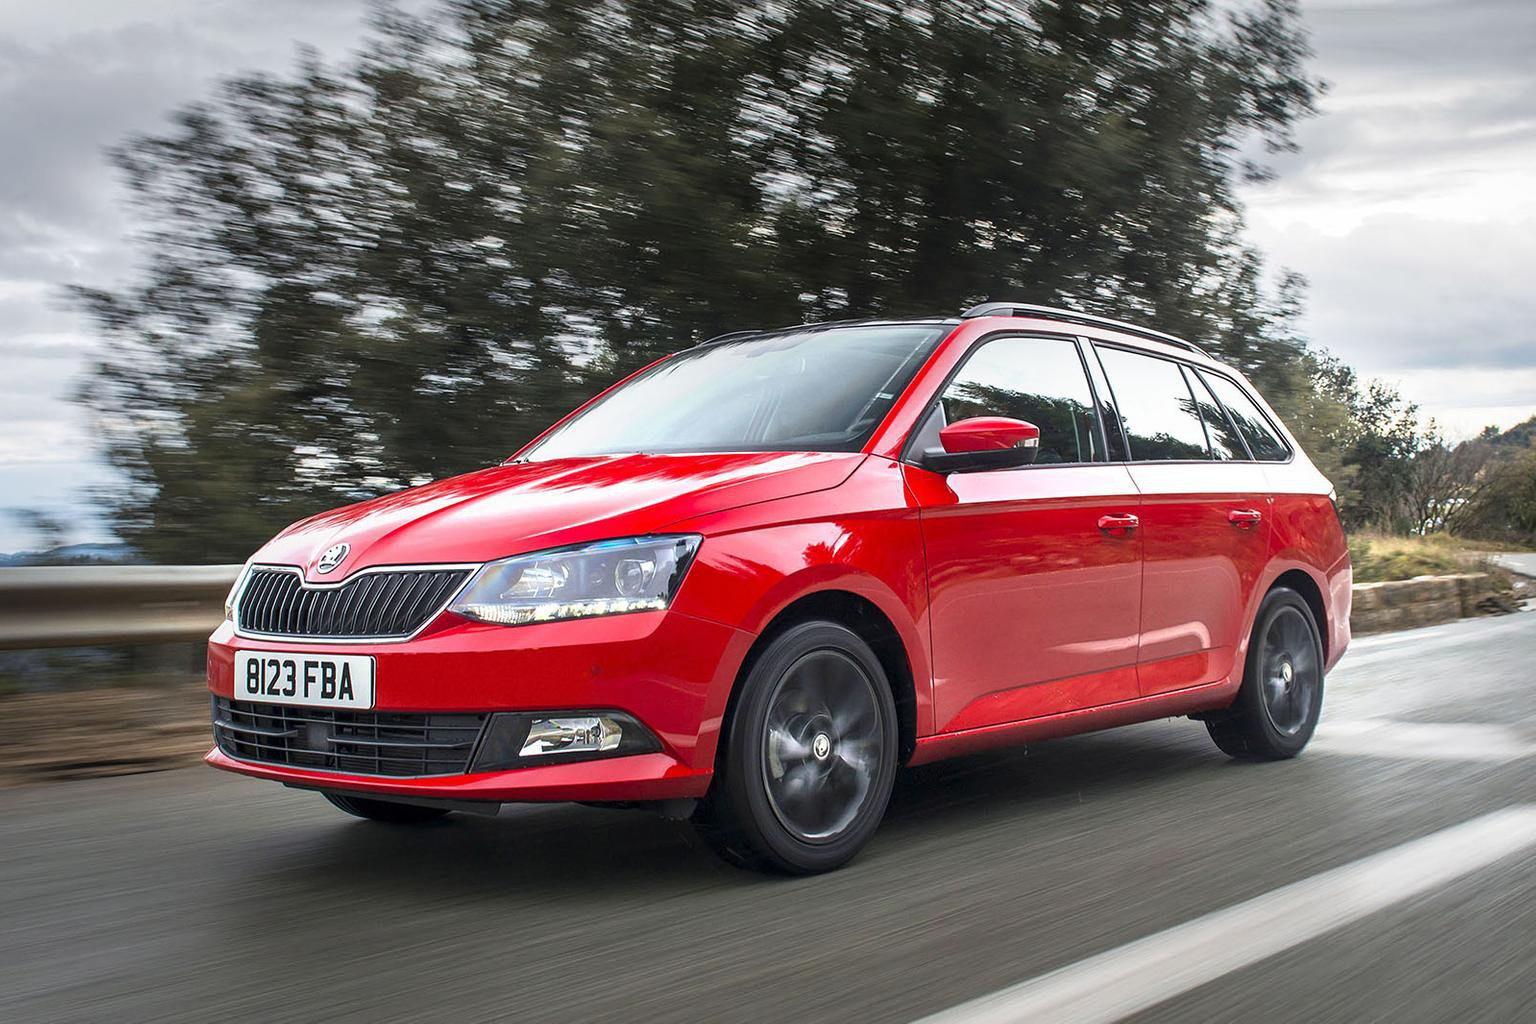 2015 Skoda Fabia Estate 1.4 TDI 90 DSG review - DO NOT PUBLISH